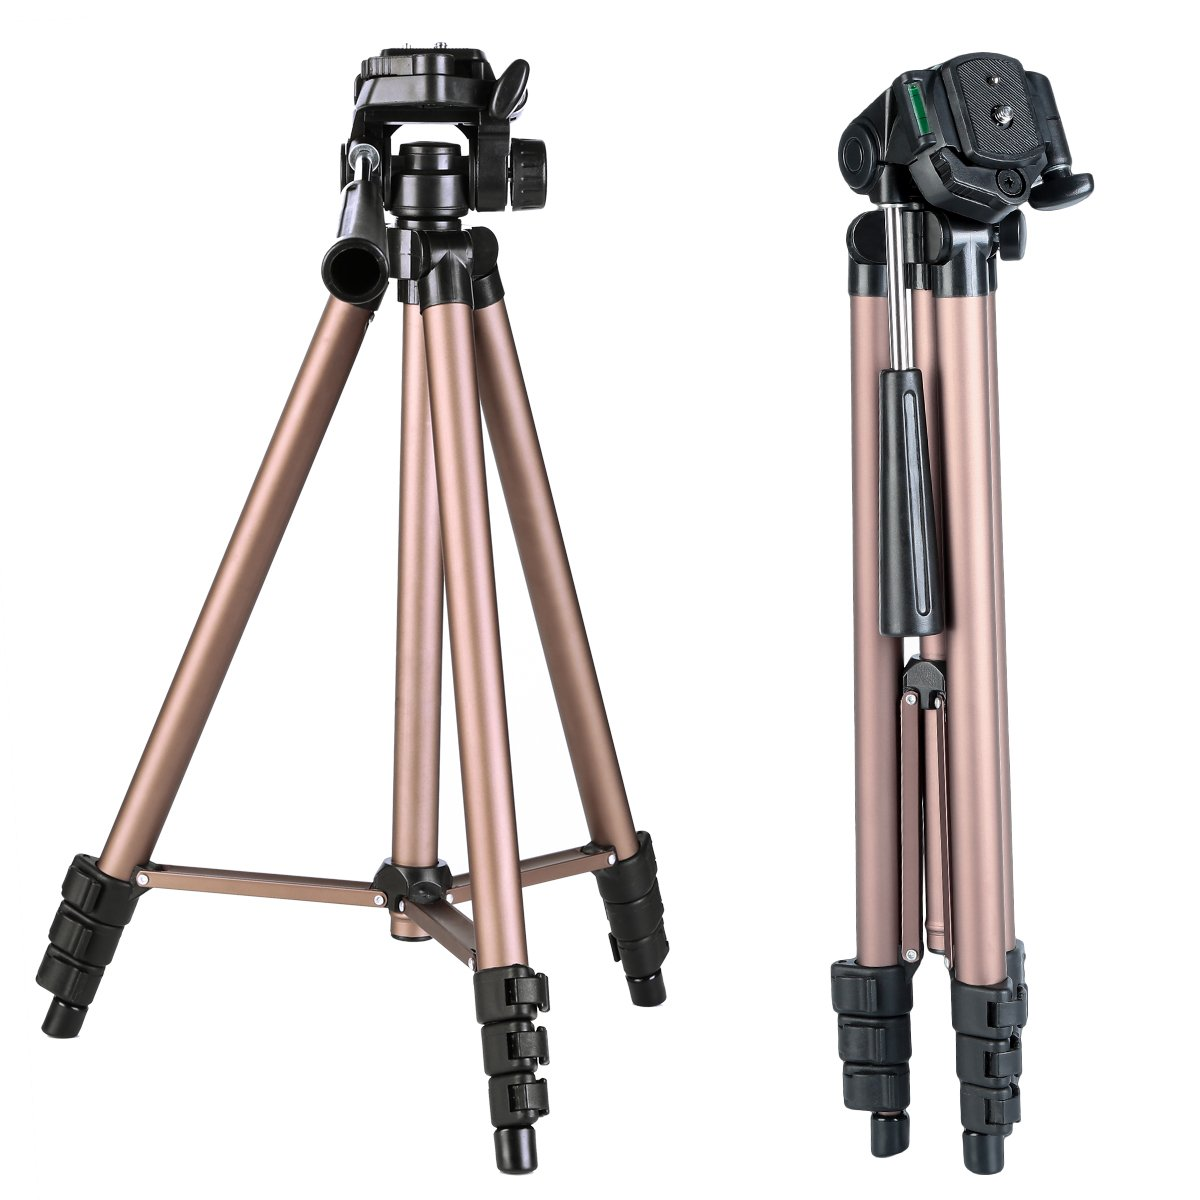 K&F Concept 49 Inch Aluminum Compact LightWeight Travel Portable Tripod with 3-Way Pan Head + 4 Sections + 1/4'' Quick Release Plate with Carry Bag for DSLR & Mirrorless Cameras by K&F Concept